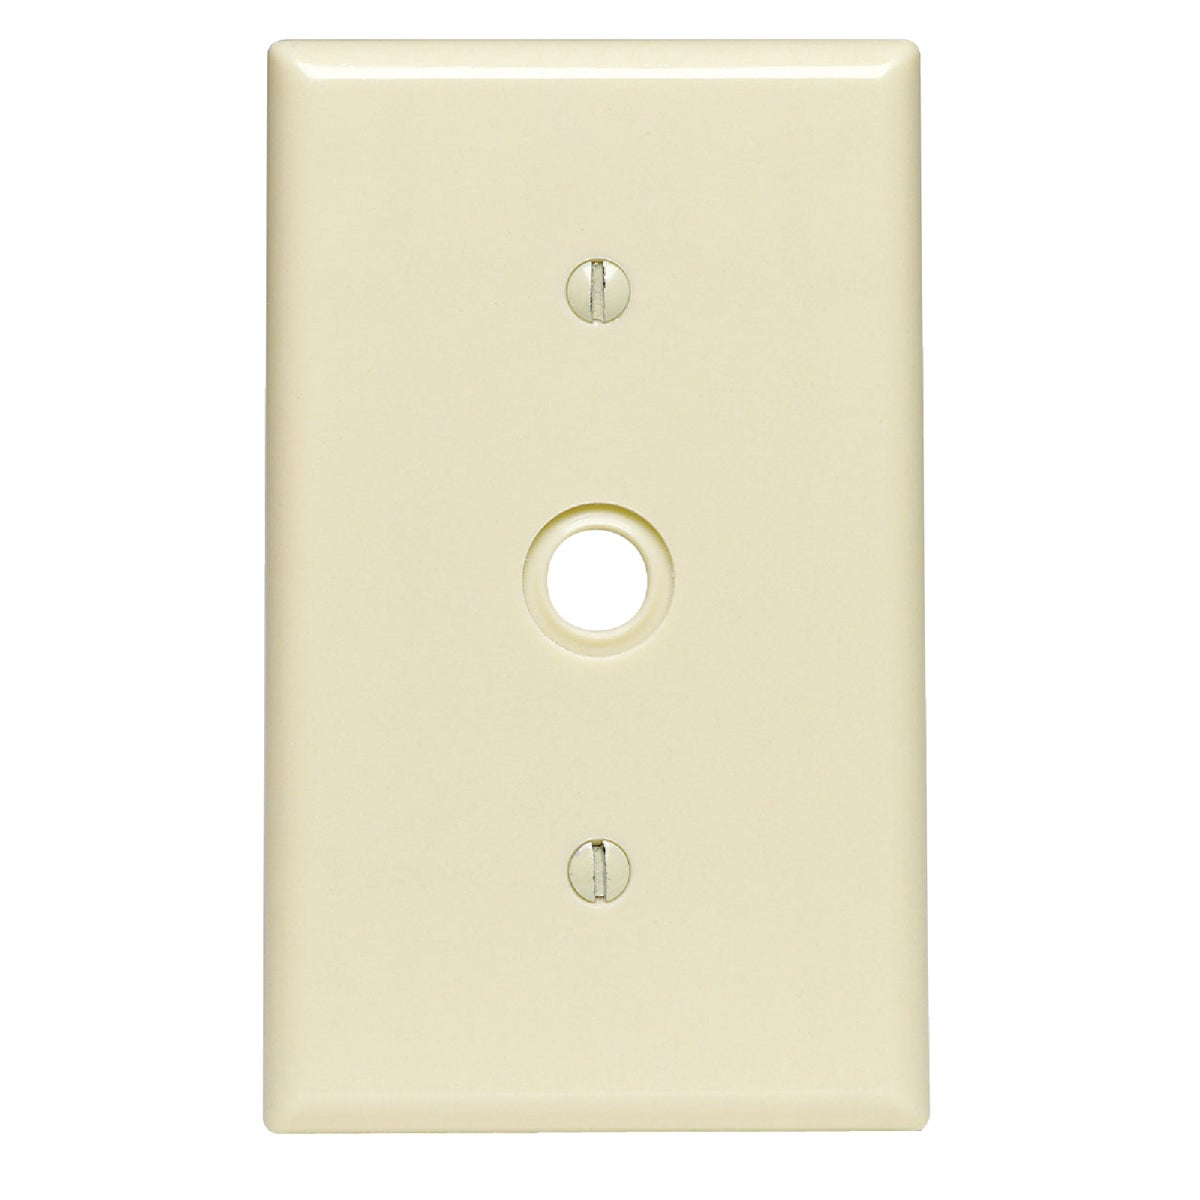 IV PHONE WALL PLATE